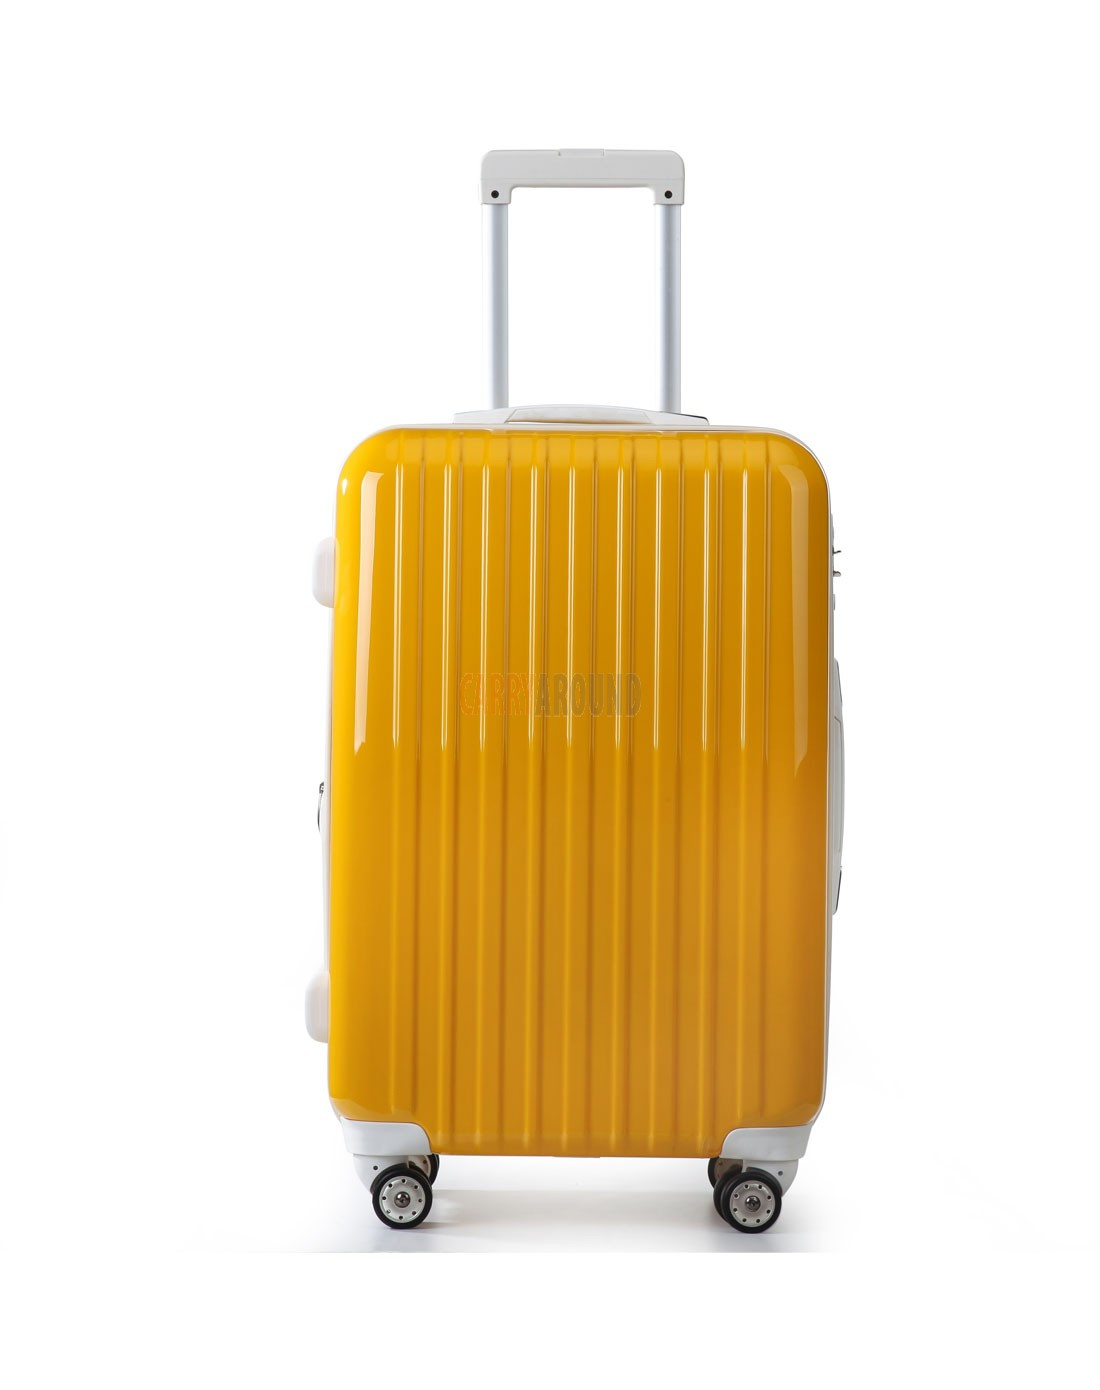 """AIRCROSS 2PC Set Luggage A55 Yellow Hard Case Expandable Trolley Luggage - 20""""24"""""""